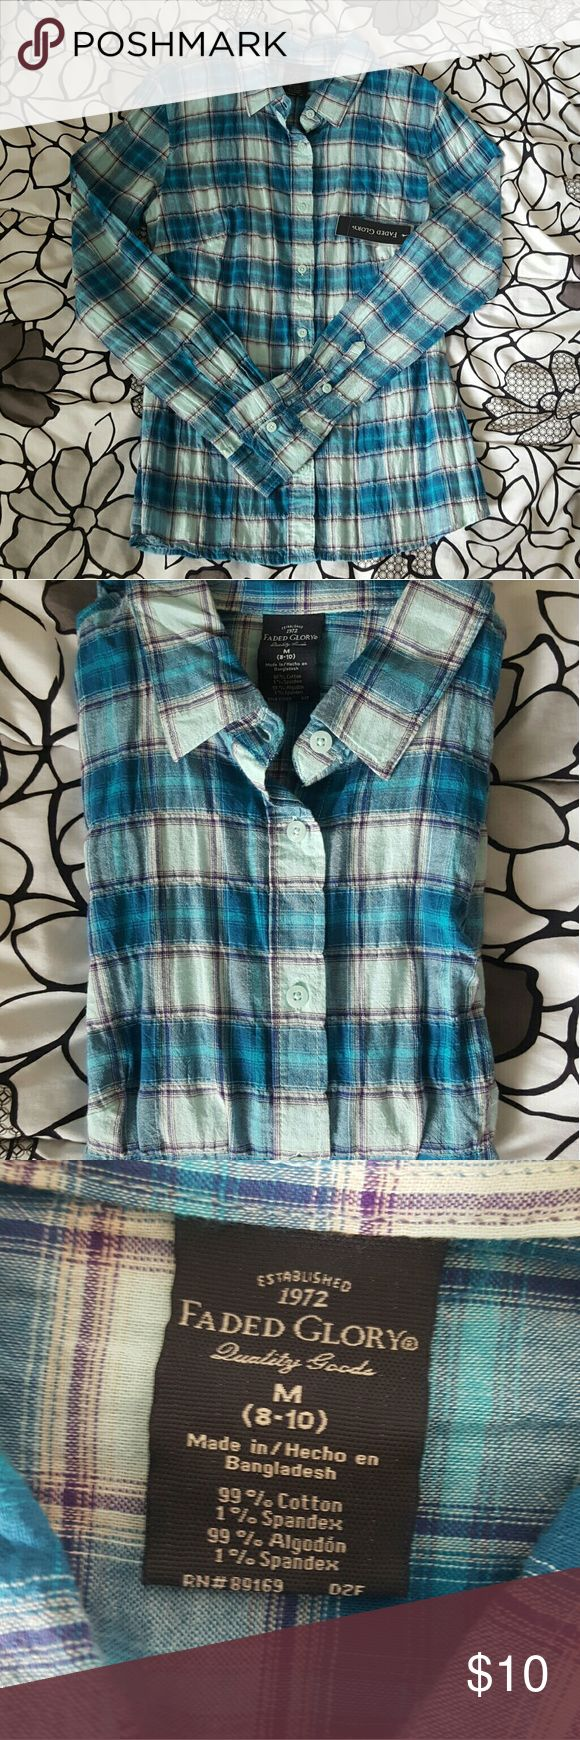 Blue Flannel Shirt Blue lightweight flannel is perfect for warmer days ahead! The shirt has never been worn and still has the tags attached. Tag says size medium (8-10). Faded Glory Tops Button Down Shirts